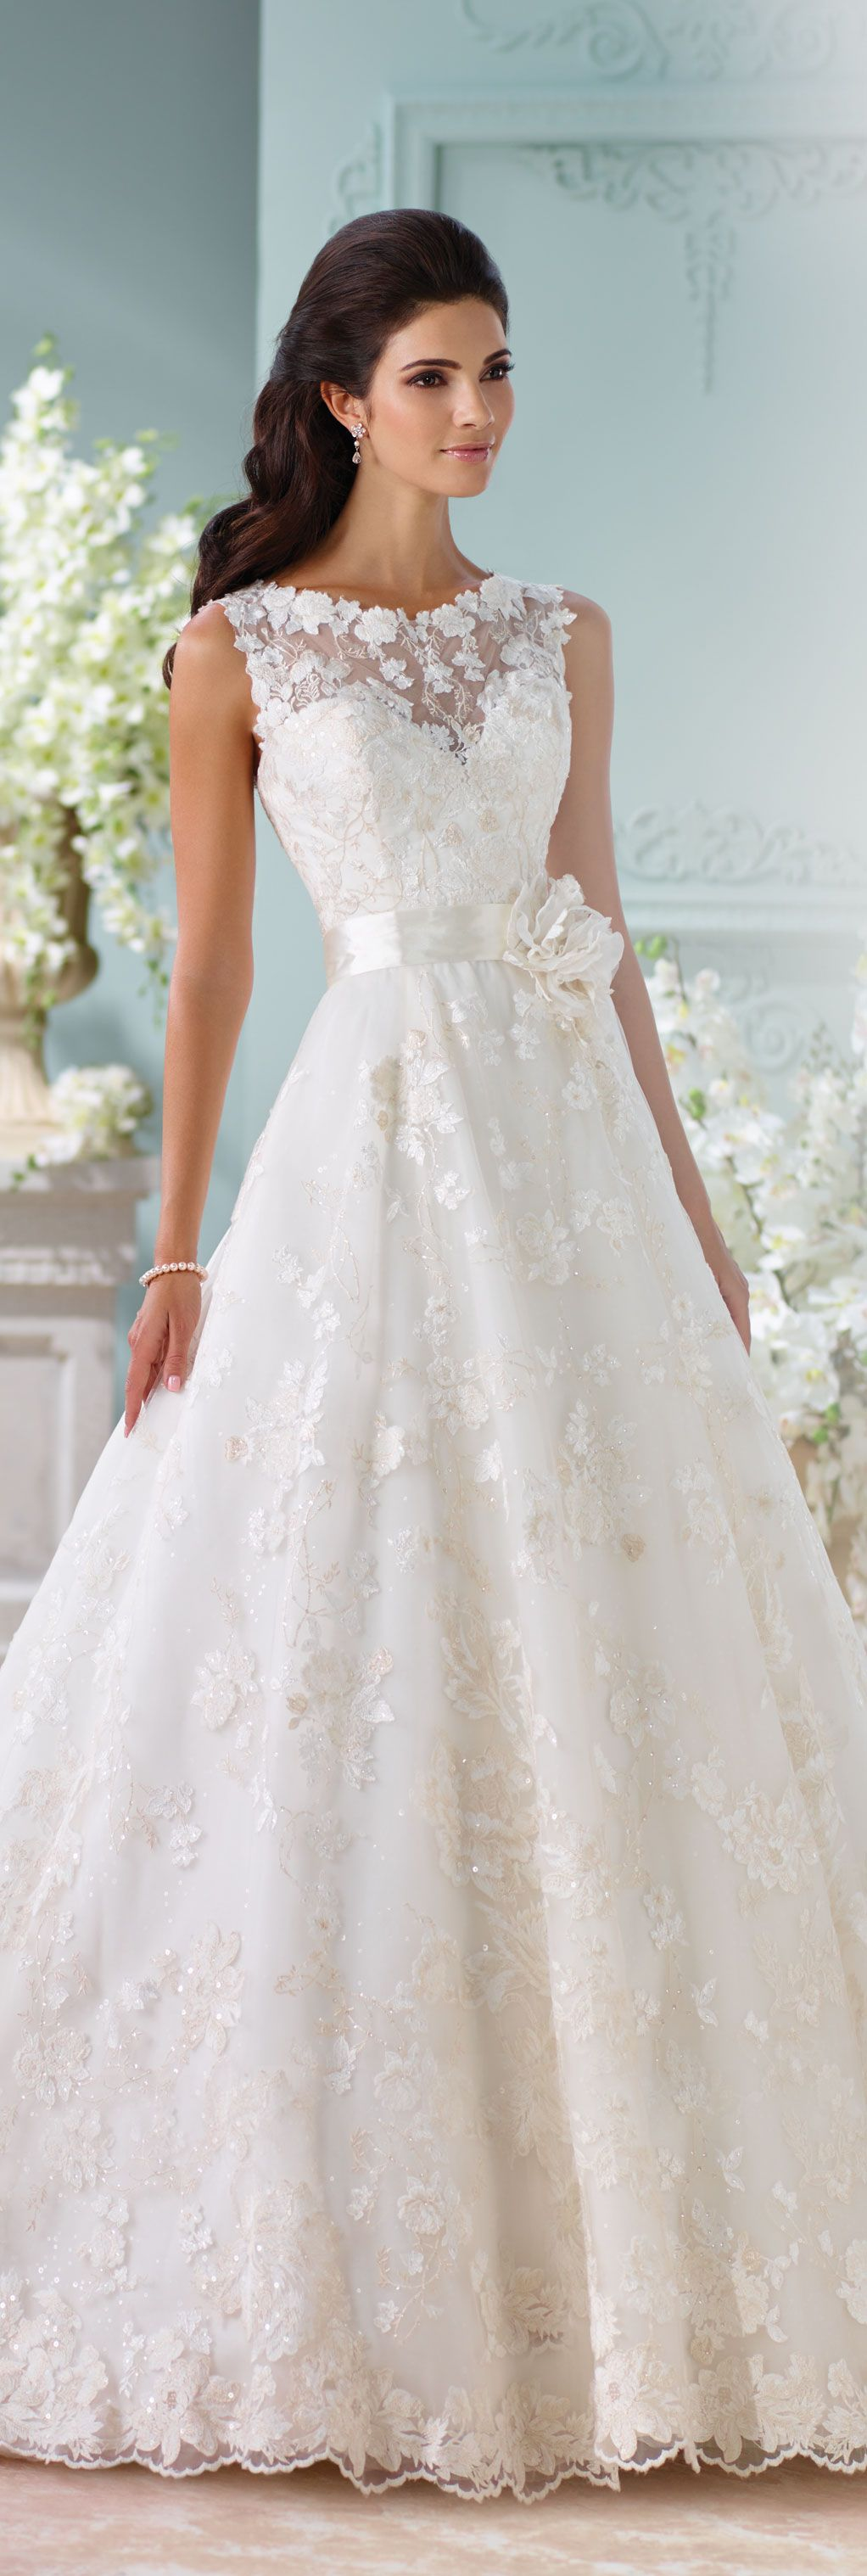 Satin Sequin & Tulle Lace A Line Wedding Dress Kyra